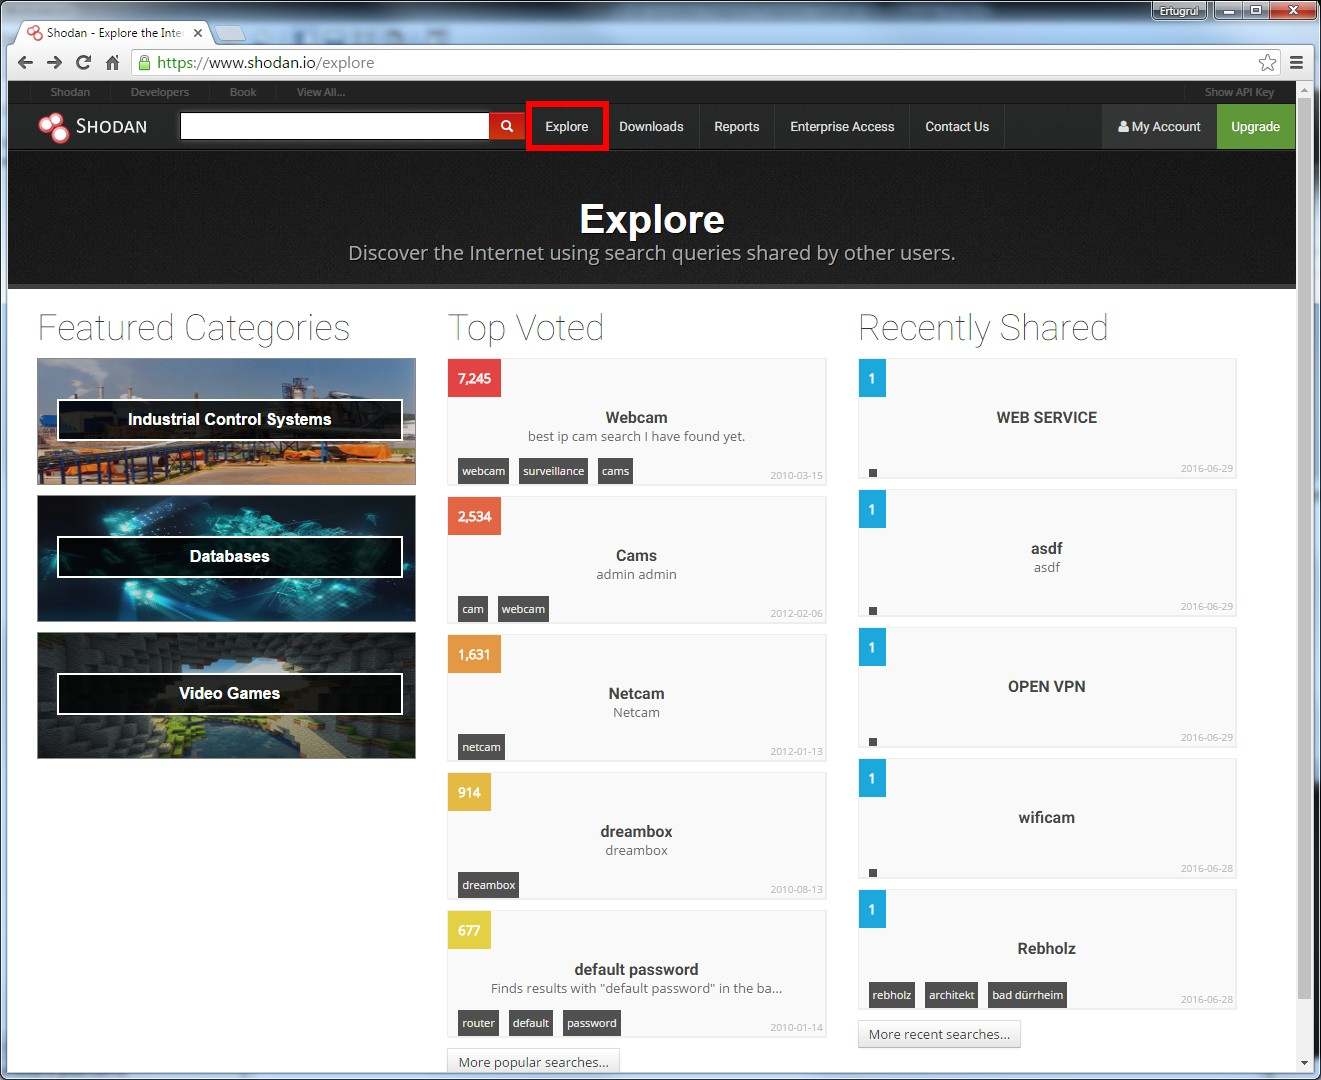 information-gathering-by-using-shodan-search-engine-for-penetration-tests-17